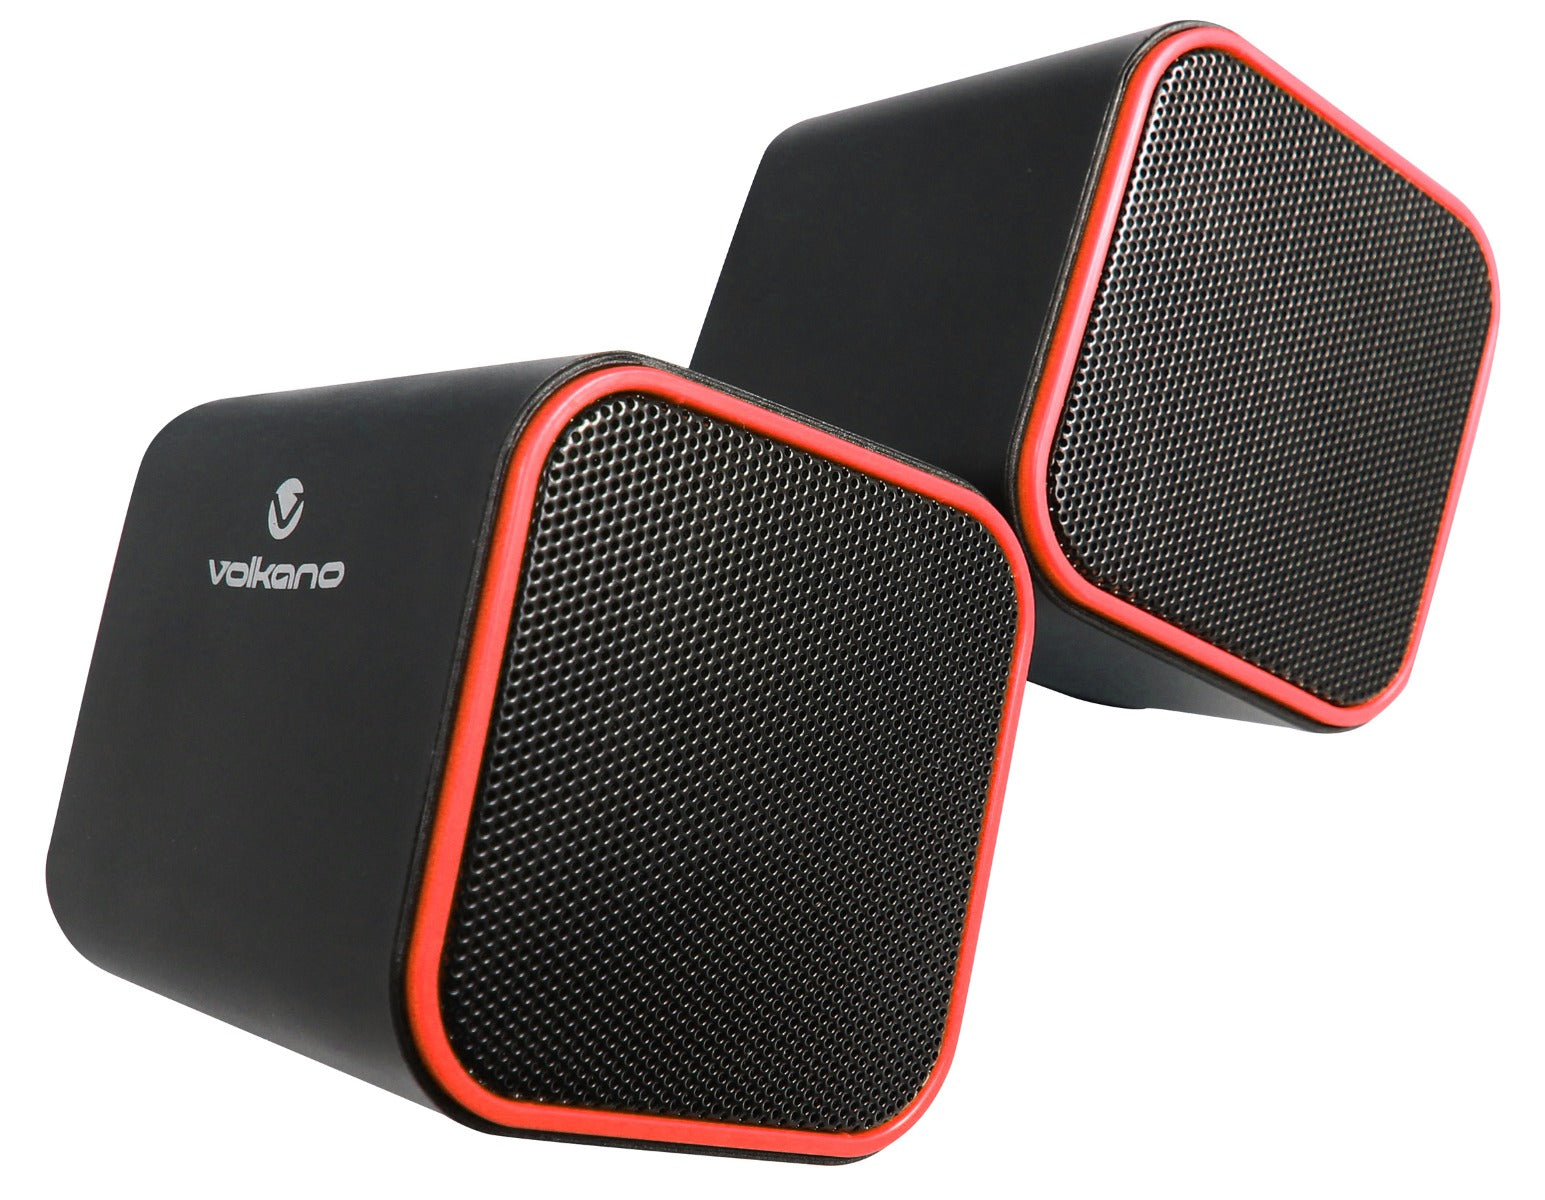 Volkano Diamond Series USB Powered 2.0 Stereo PC Laptop Speakers - Red - VOLK-VB702/RED